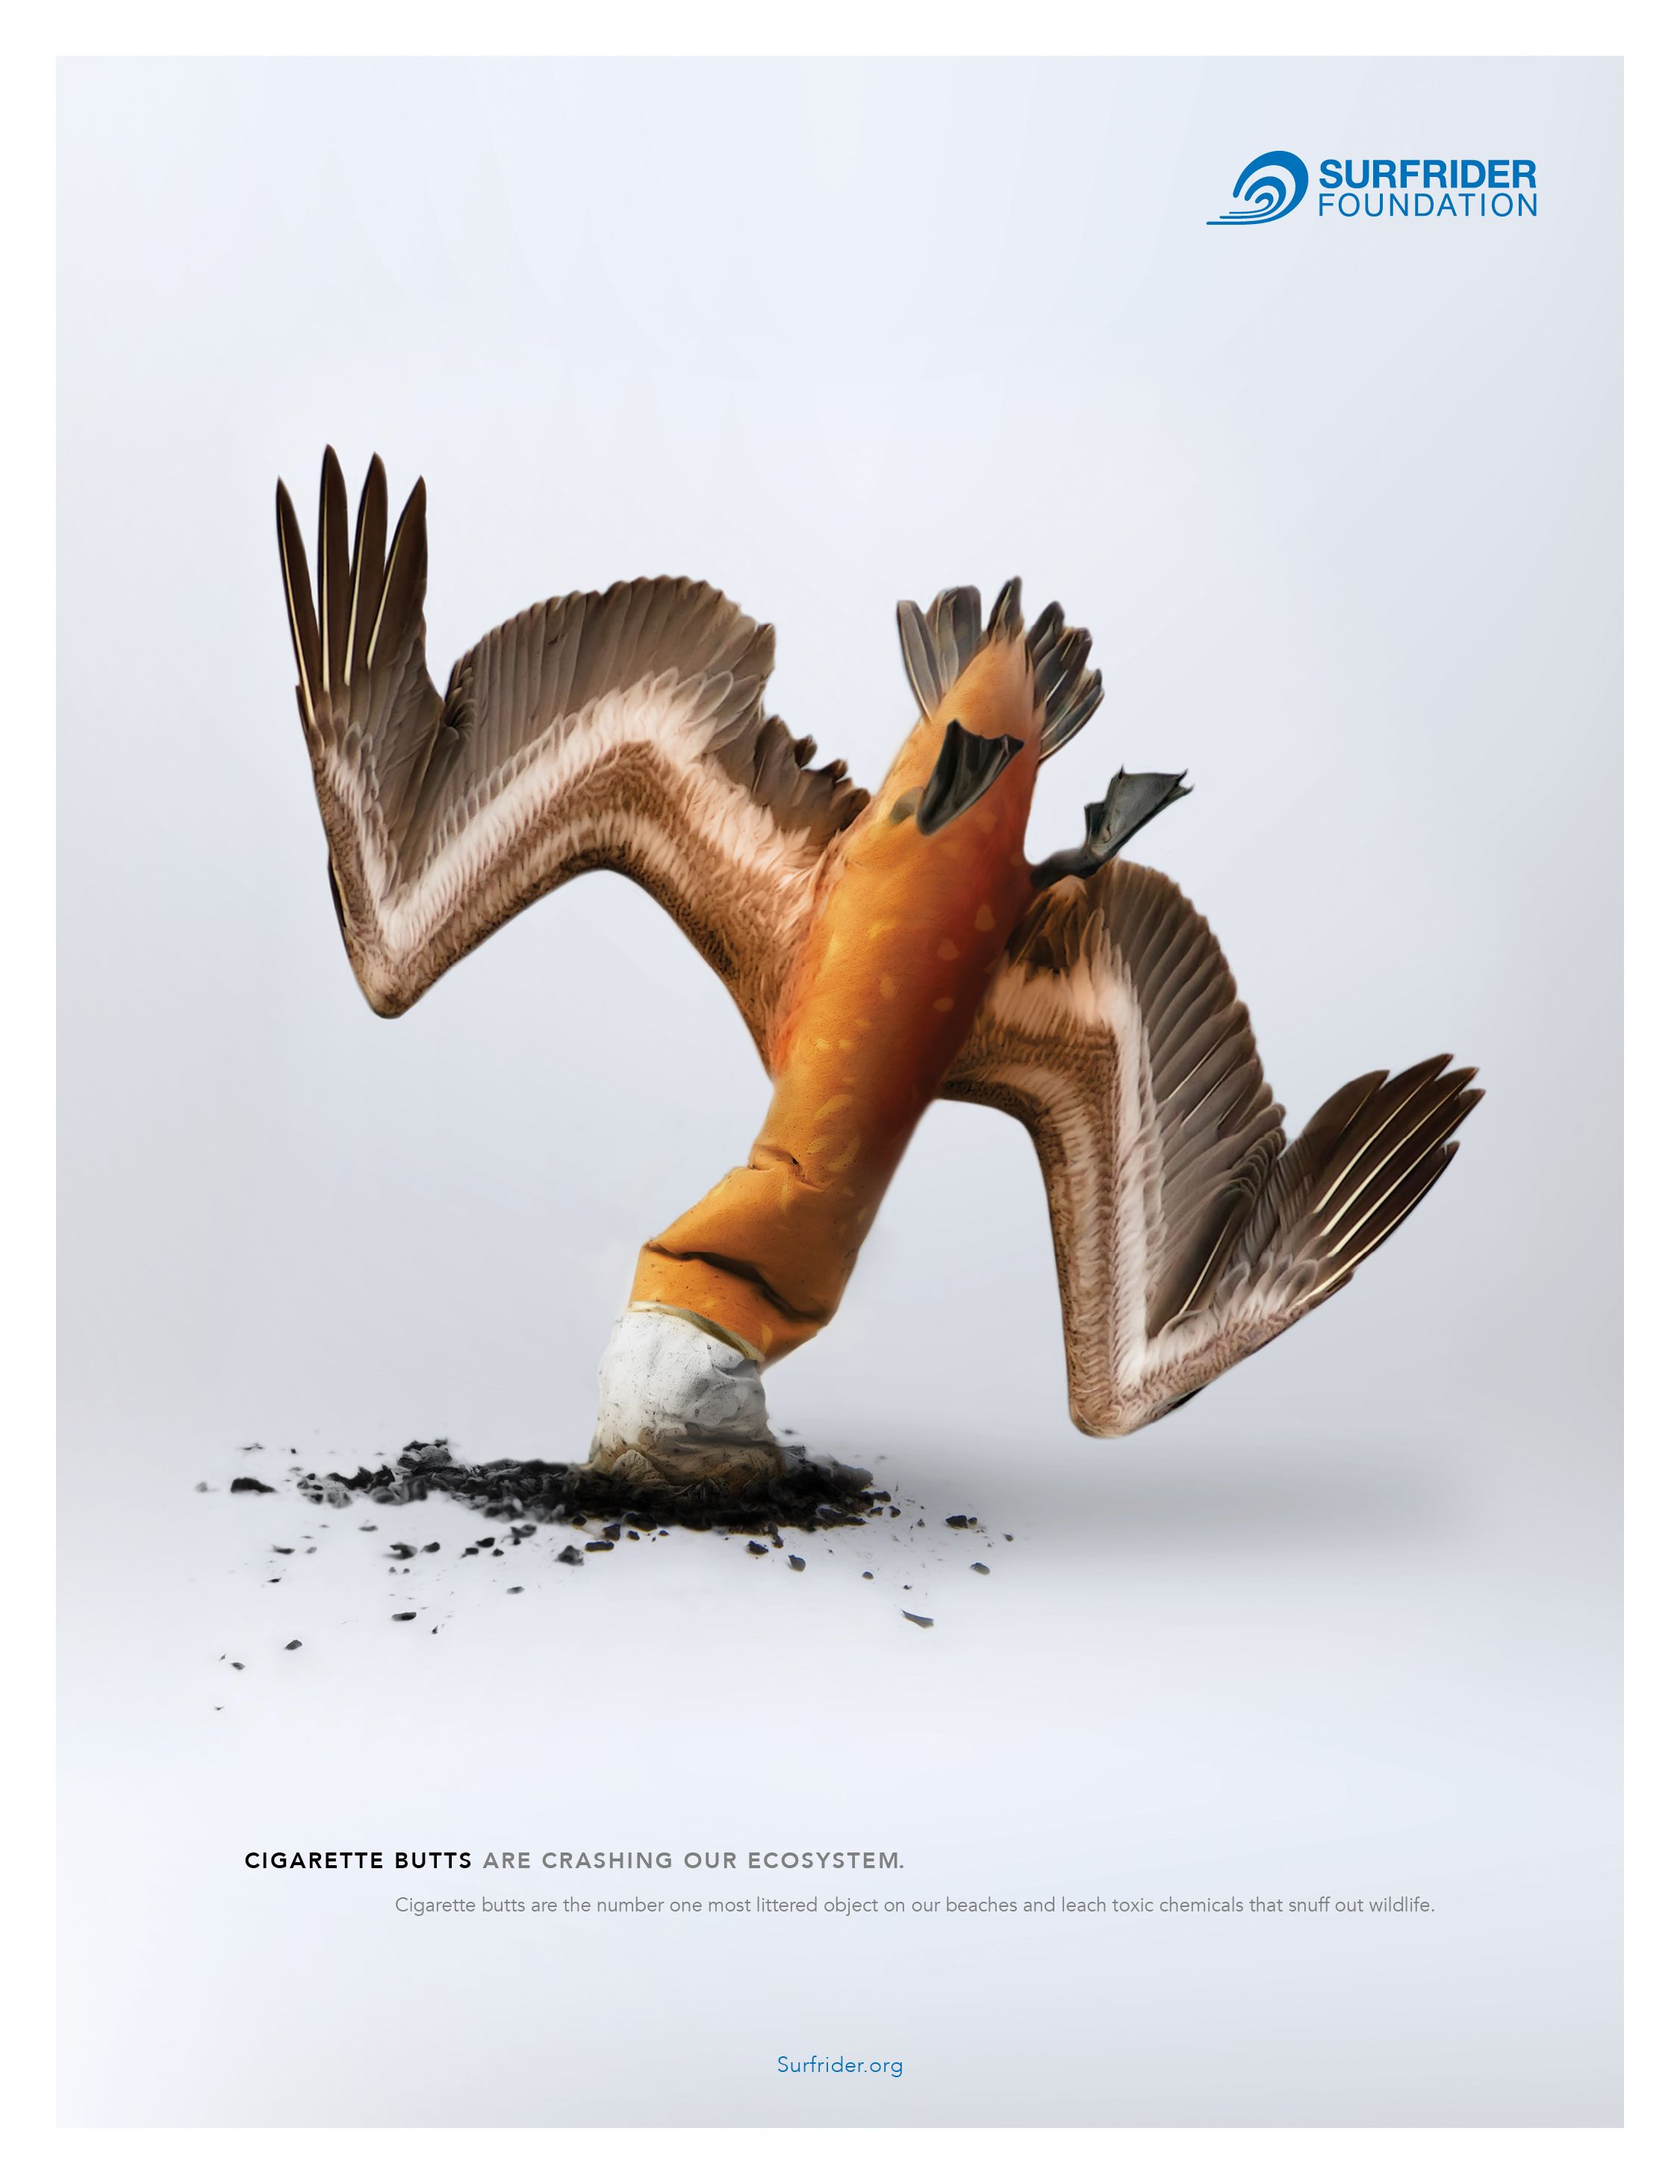 print advertisment created by gyro united states for surfrider